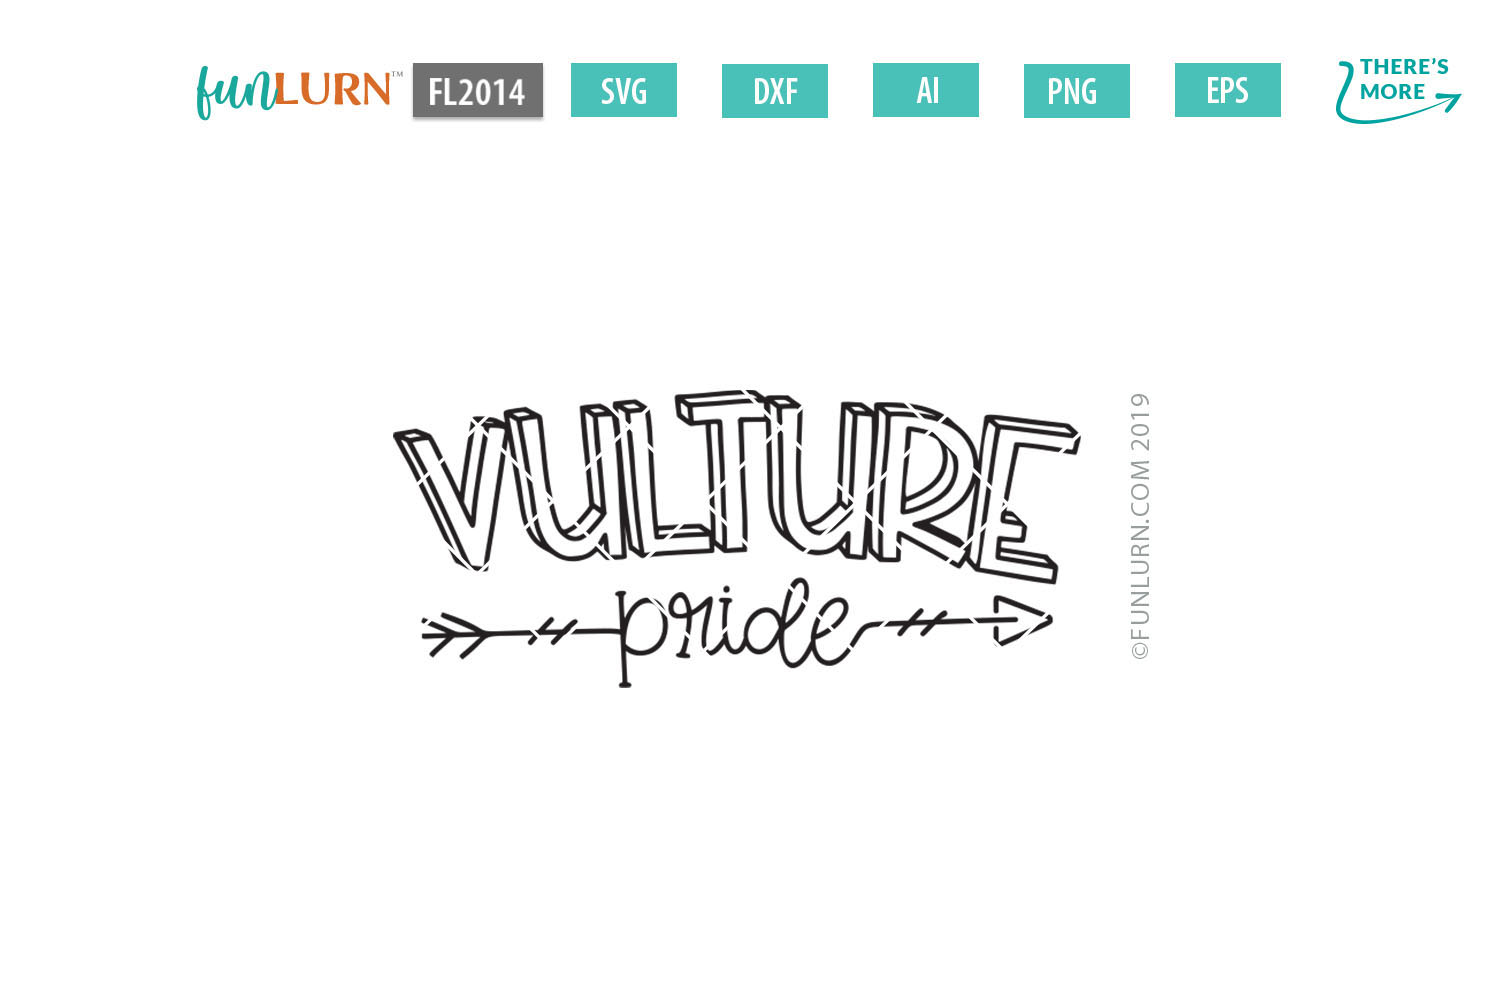 Vulture Pride Team SVG Cut File example image 2